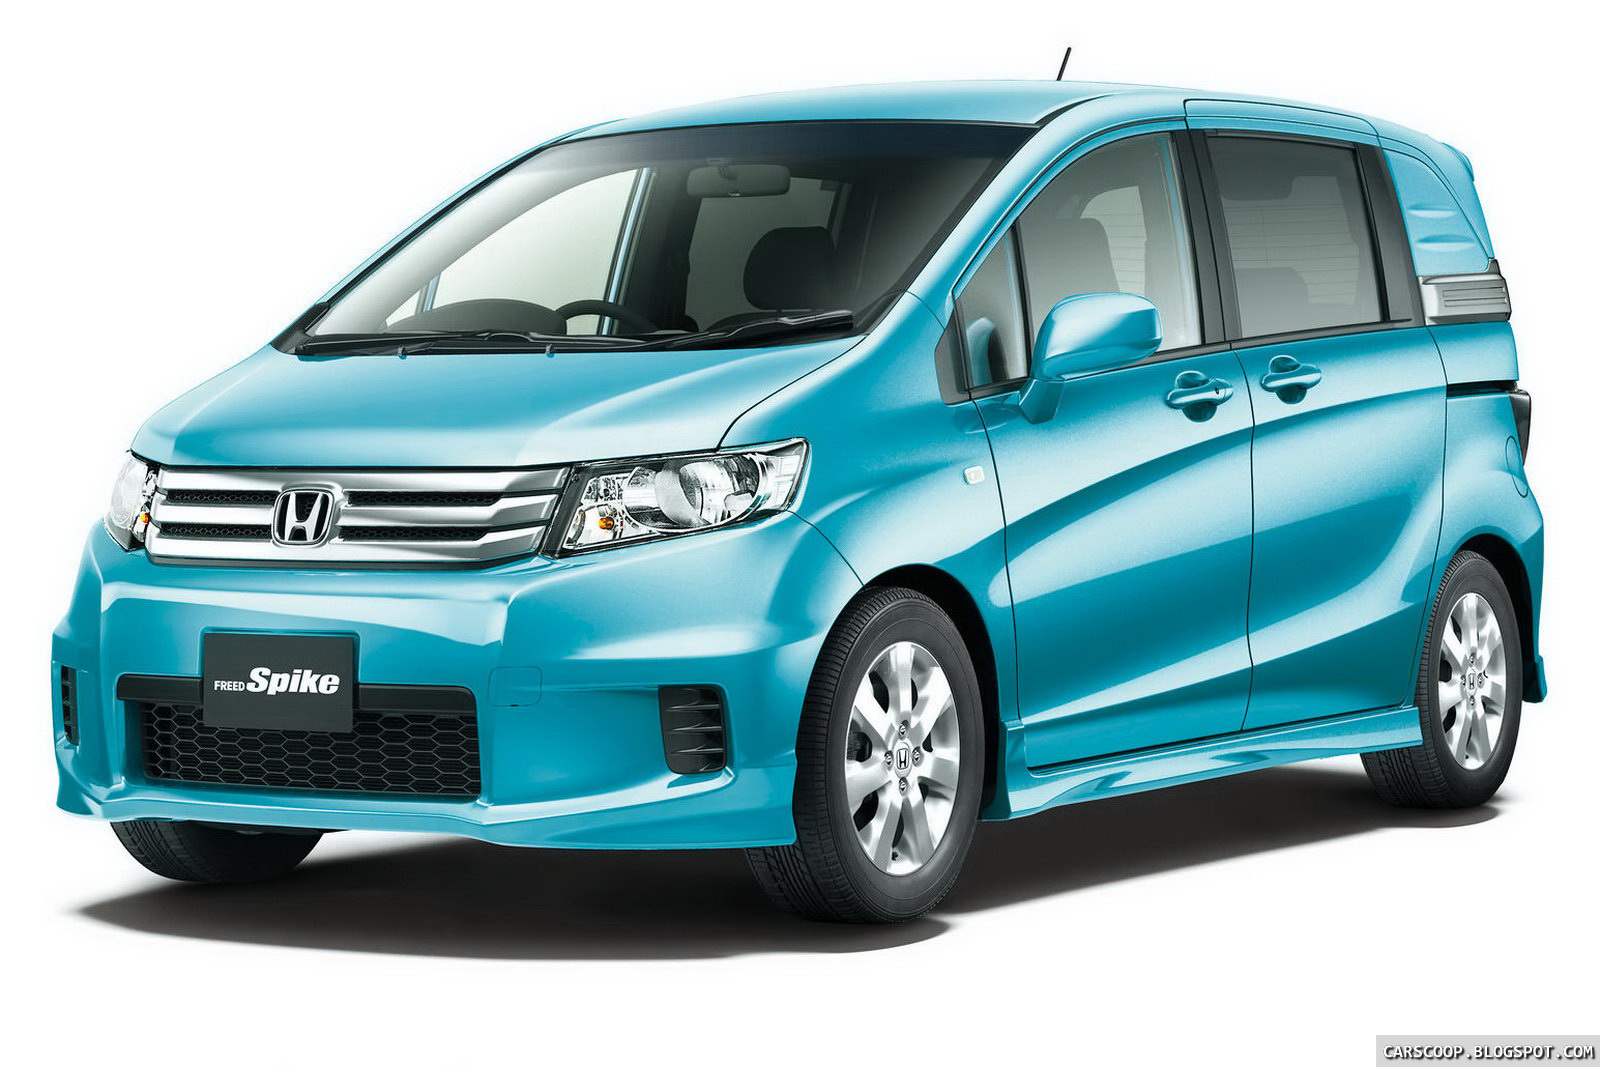 new honda freed spike lifestyle minivan debuts in japan. Black Bedroom Furniture Sets. Home Design Ideas